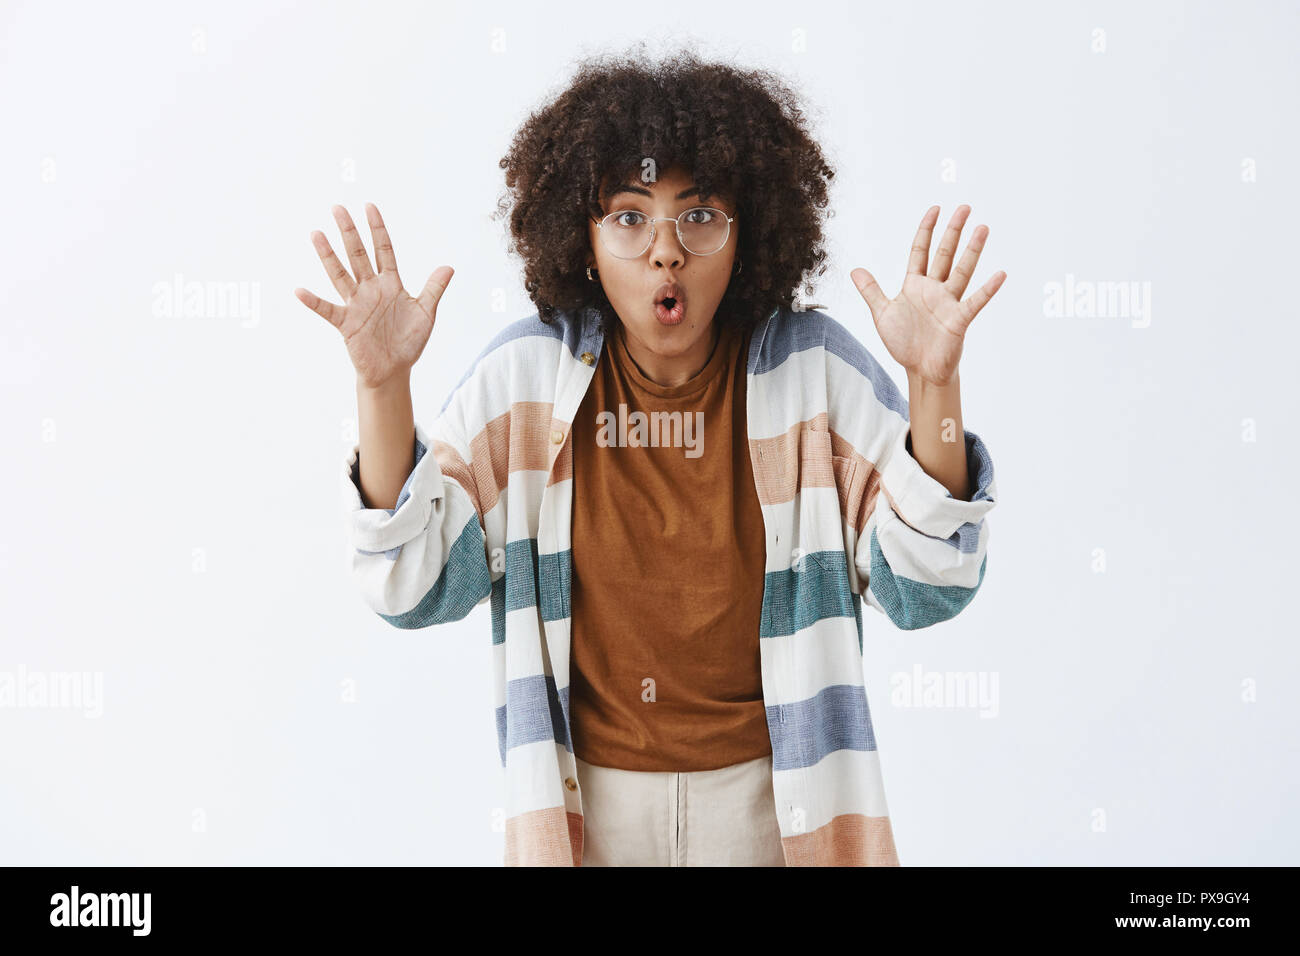 Stay were you are. Excited sociable and creative female with afro hairstyle raising palms and folding lips telling scary story while on trip with friends sitting by fire being persuasive and emotive - Stock Image